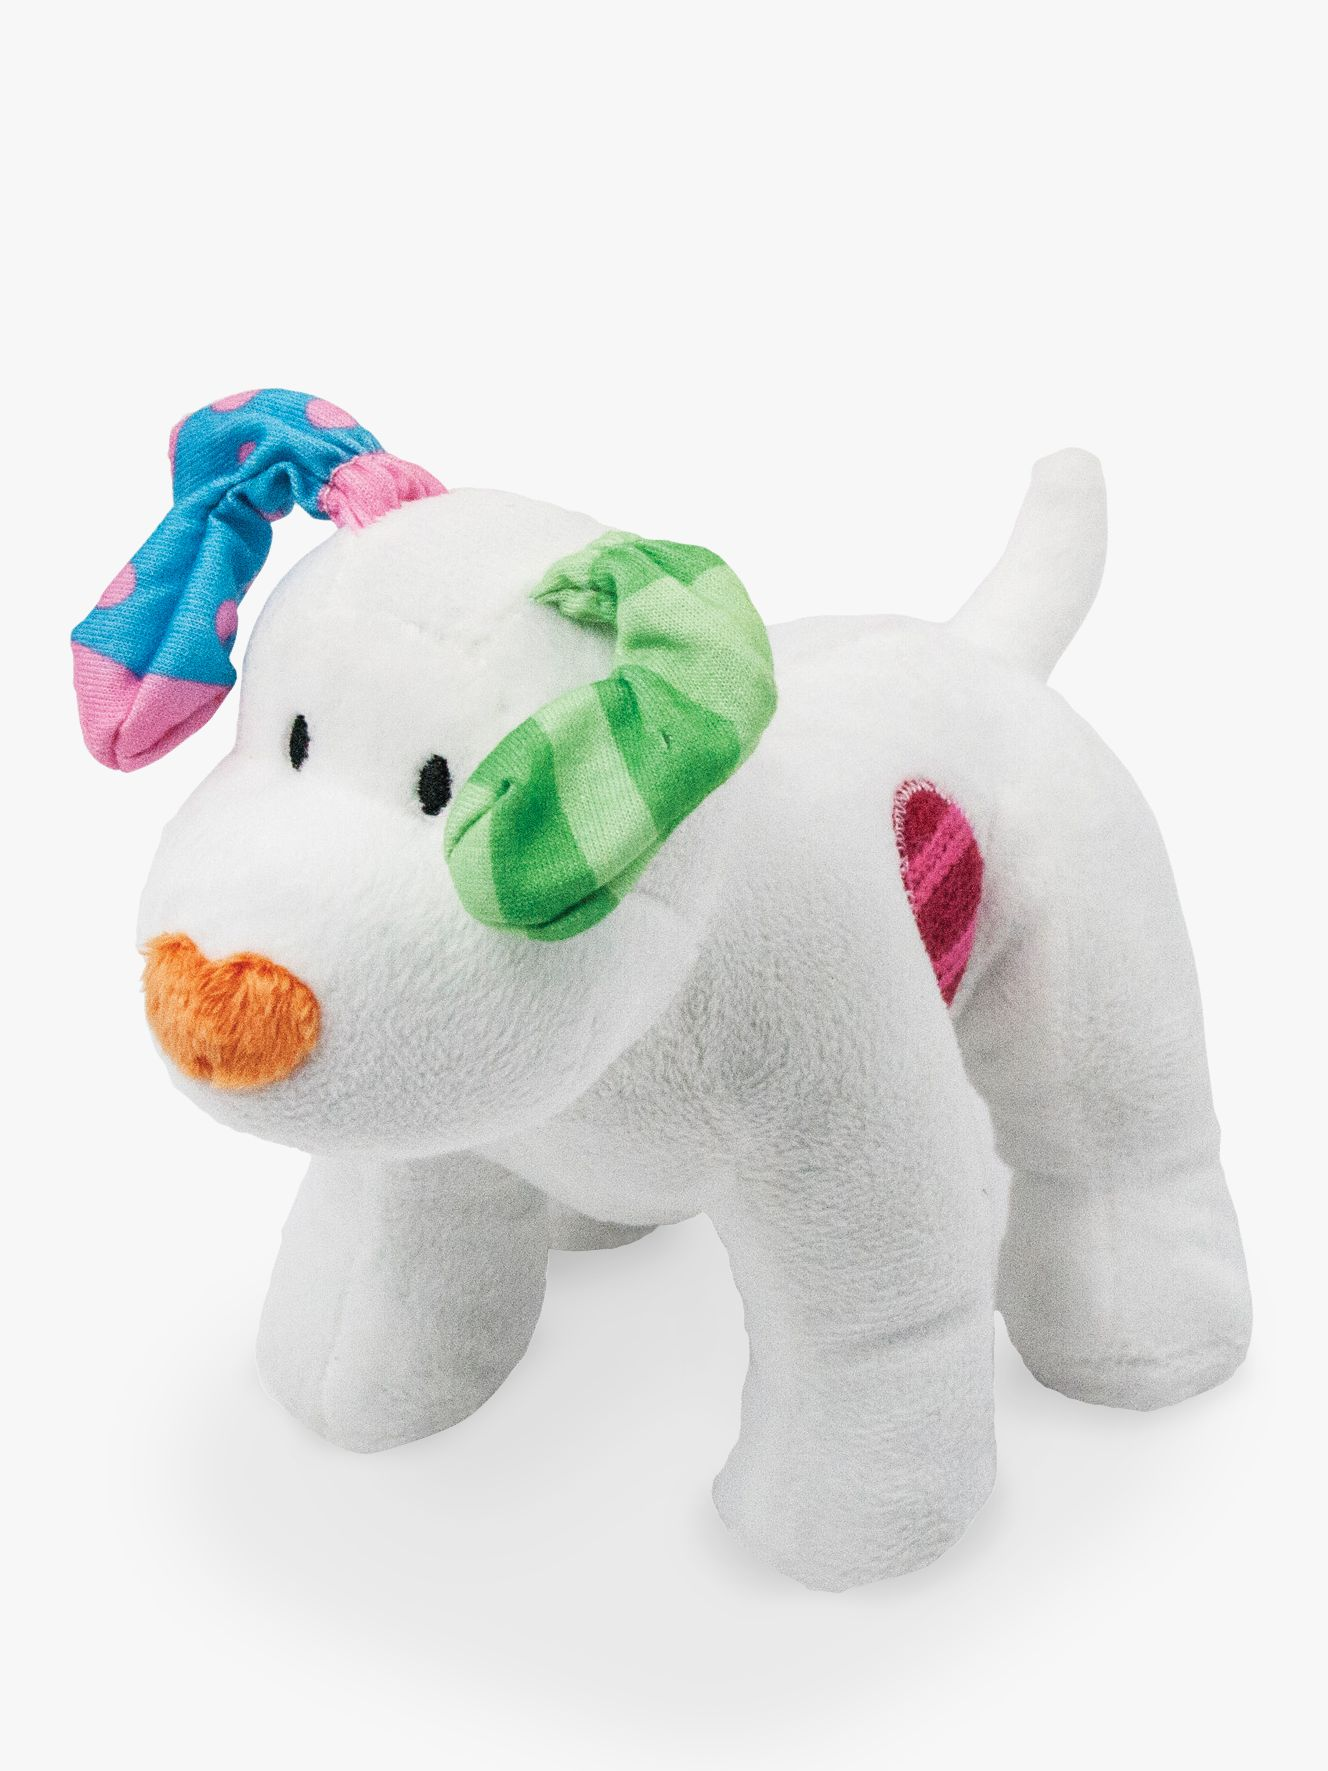 The Snowman The Snowman Snowdog Soft Toy, Small